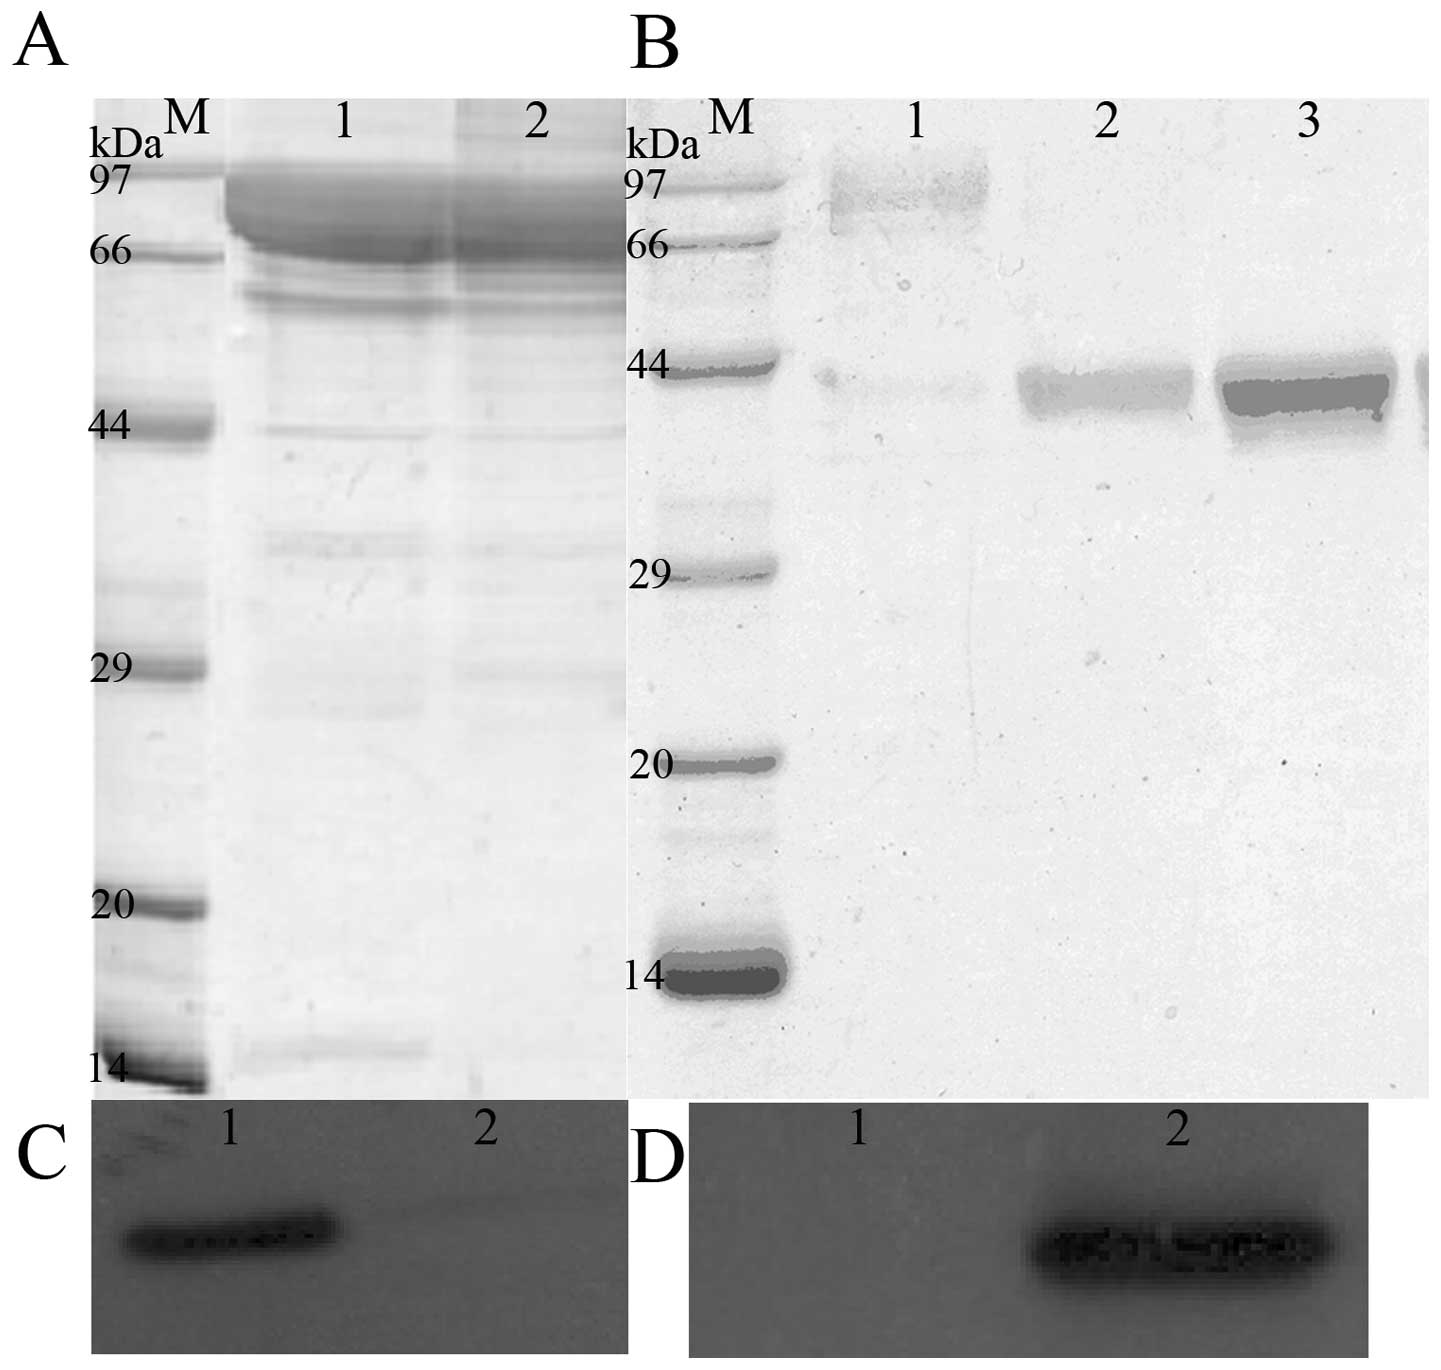 Expression And Purification Of Recombinant Proteins Based